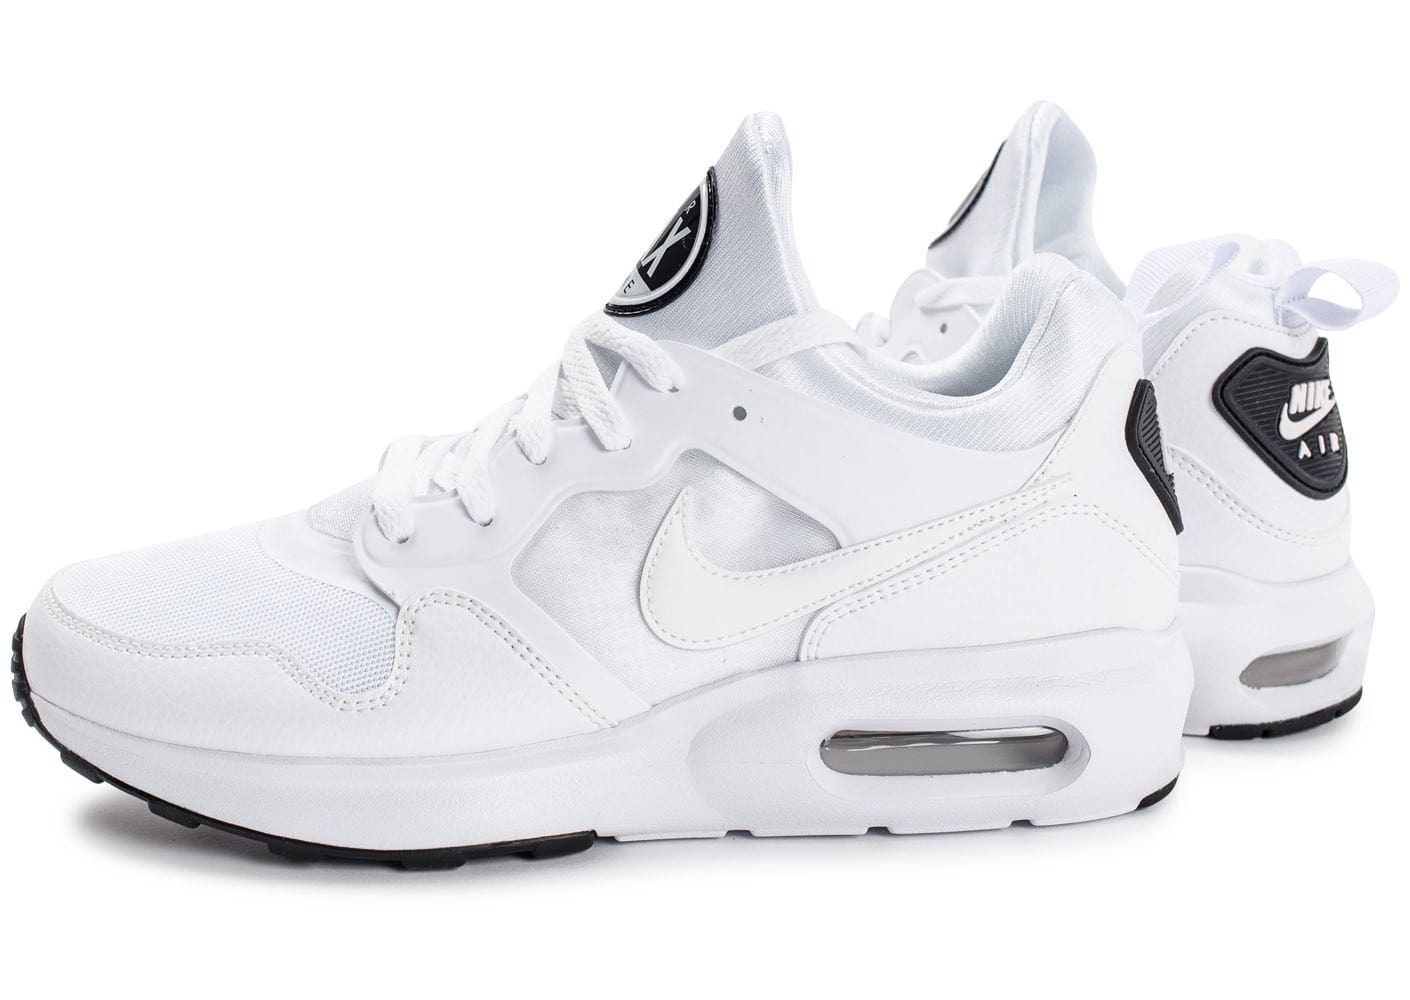 nike air max prime blanc chaussures homme chausport. Black Bedroom Furniture Sets. Home Design Ideas